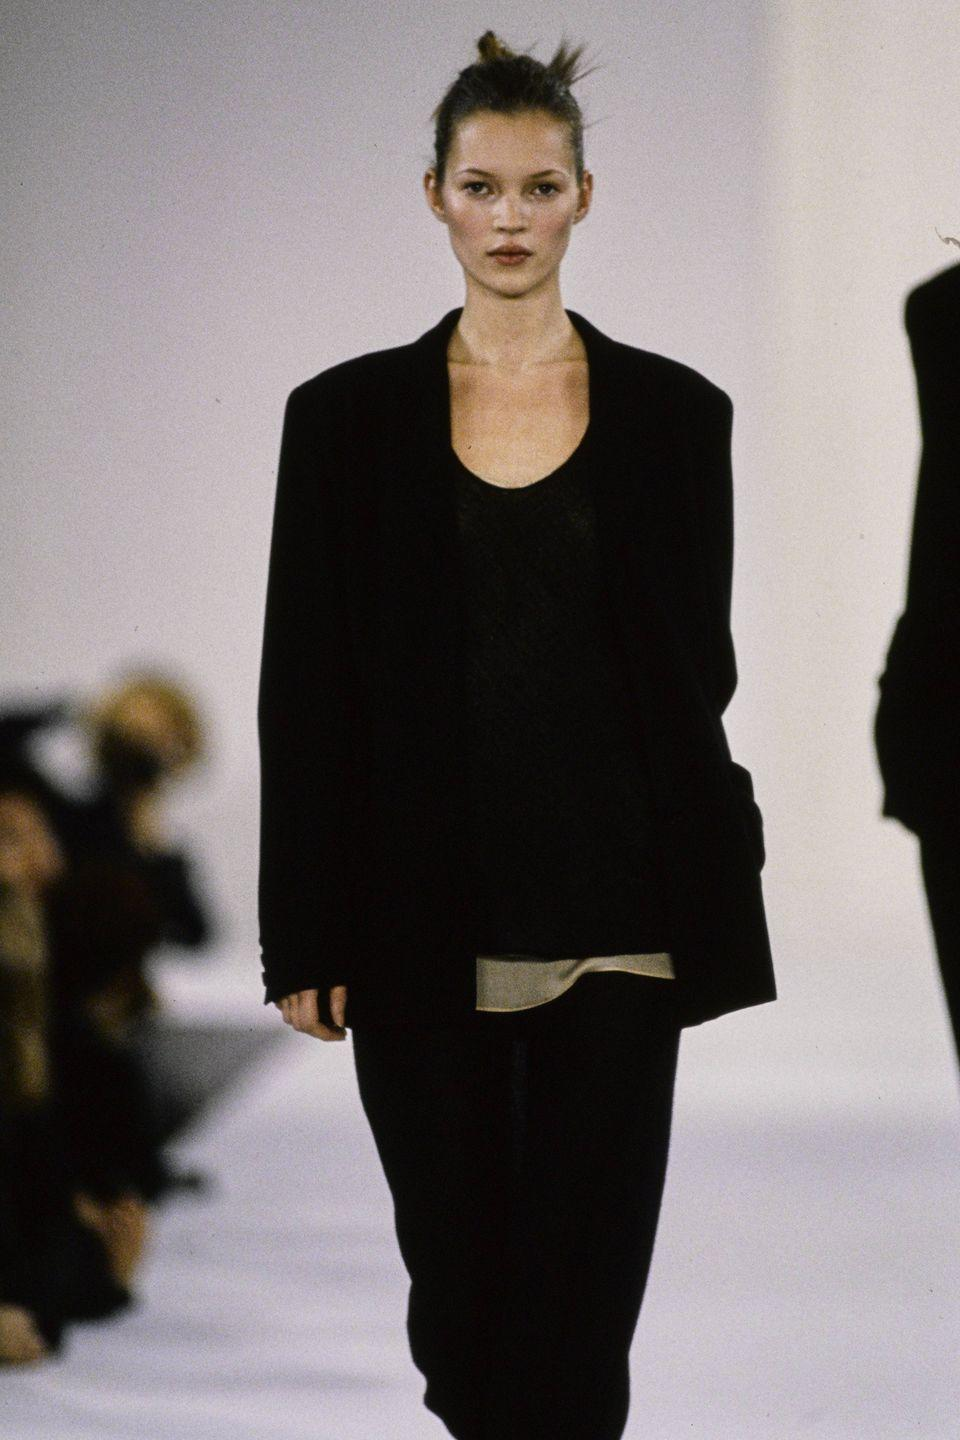 <p>Kate Moss's entry into the fashion industry was somewhat controversial. Discovered at an airport in London at 14 years old, her waiflike figure was a contrast to the Amazonian bodies that preceded her. Indeed, she was the poster child for the grunge style that pervaded a good part of the '90s—and her party-going lifestyle and string of famous relationships only heightened this reputation. Still, her name crossed industry barriers, becoming part of the pop culture lexicon. </p>